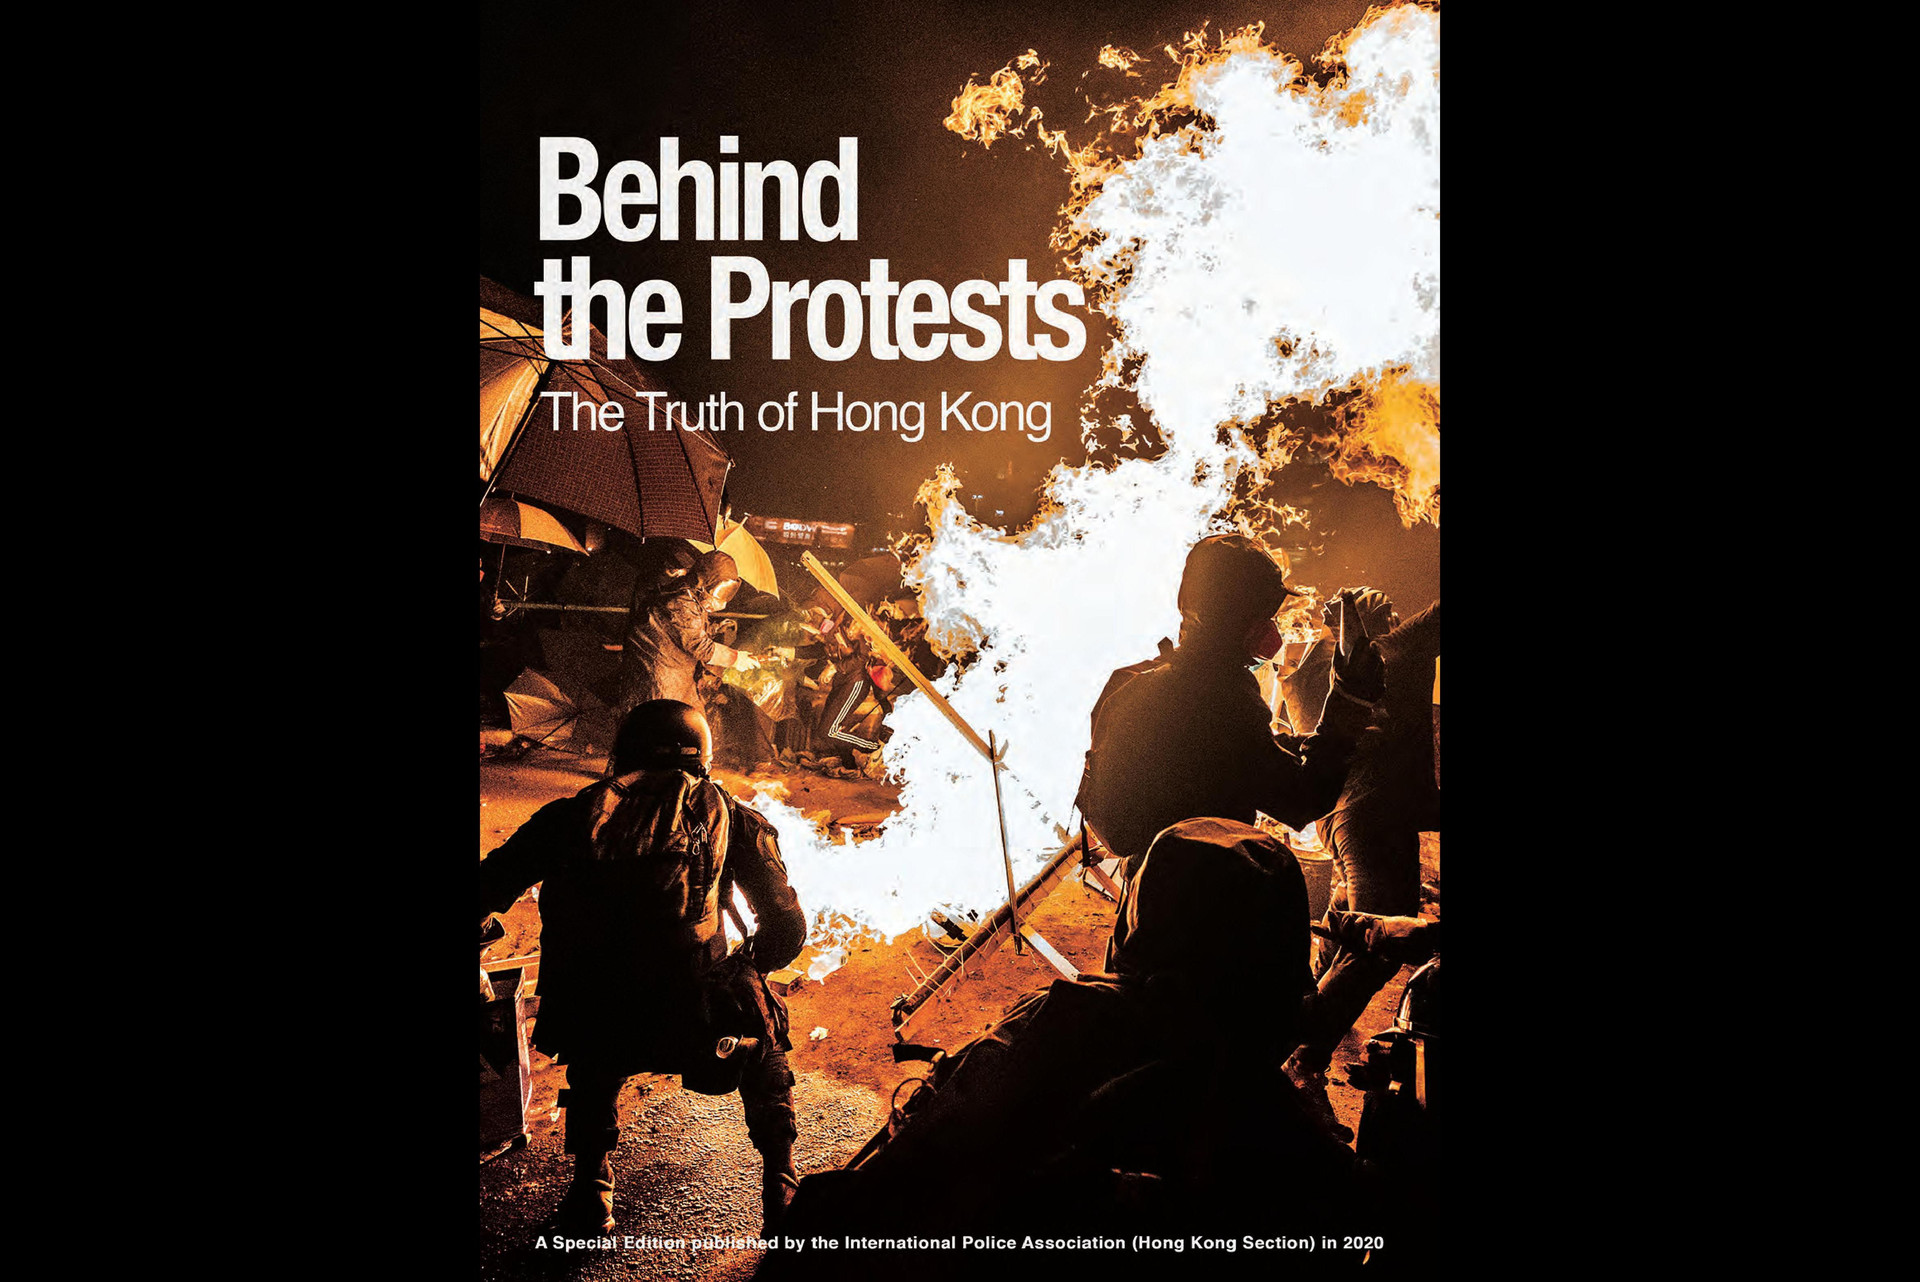 the truth about hong kong 01.jpg